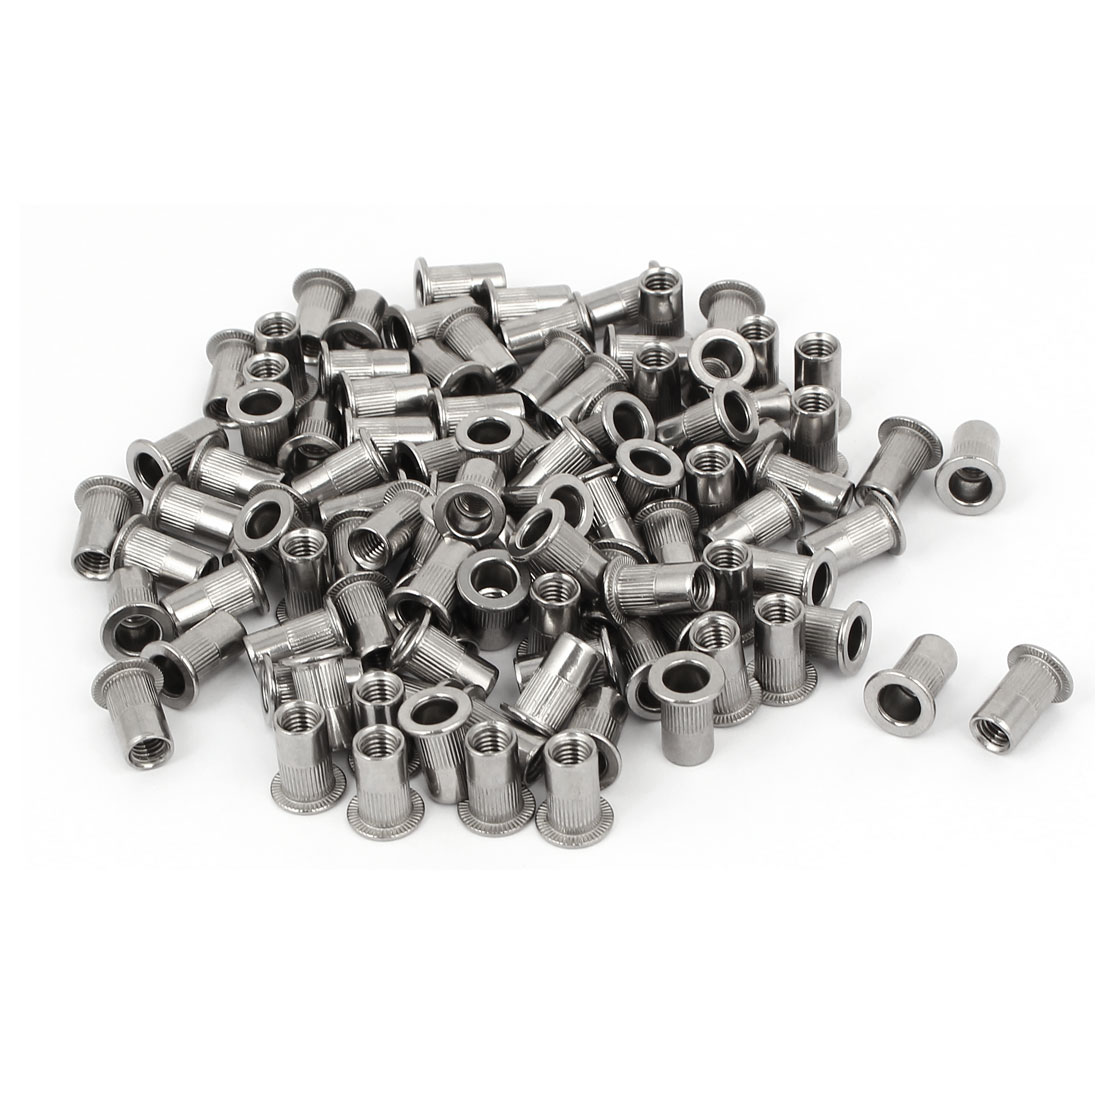 M5 x 13mm 304 Stainless Steel Knurled Rivet Nut Insert Nutsert 100PCS